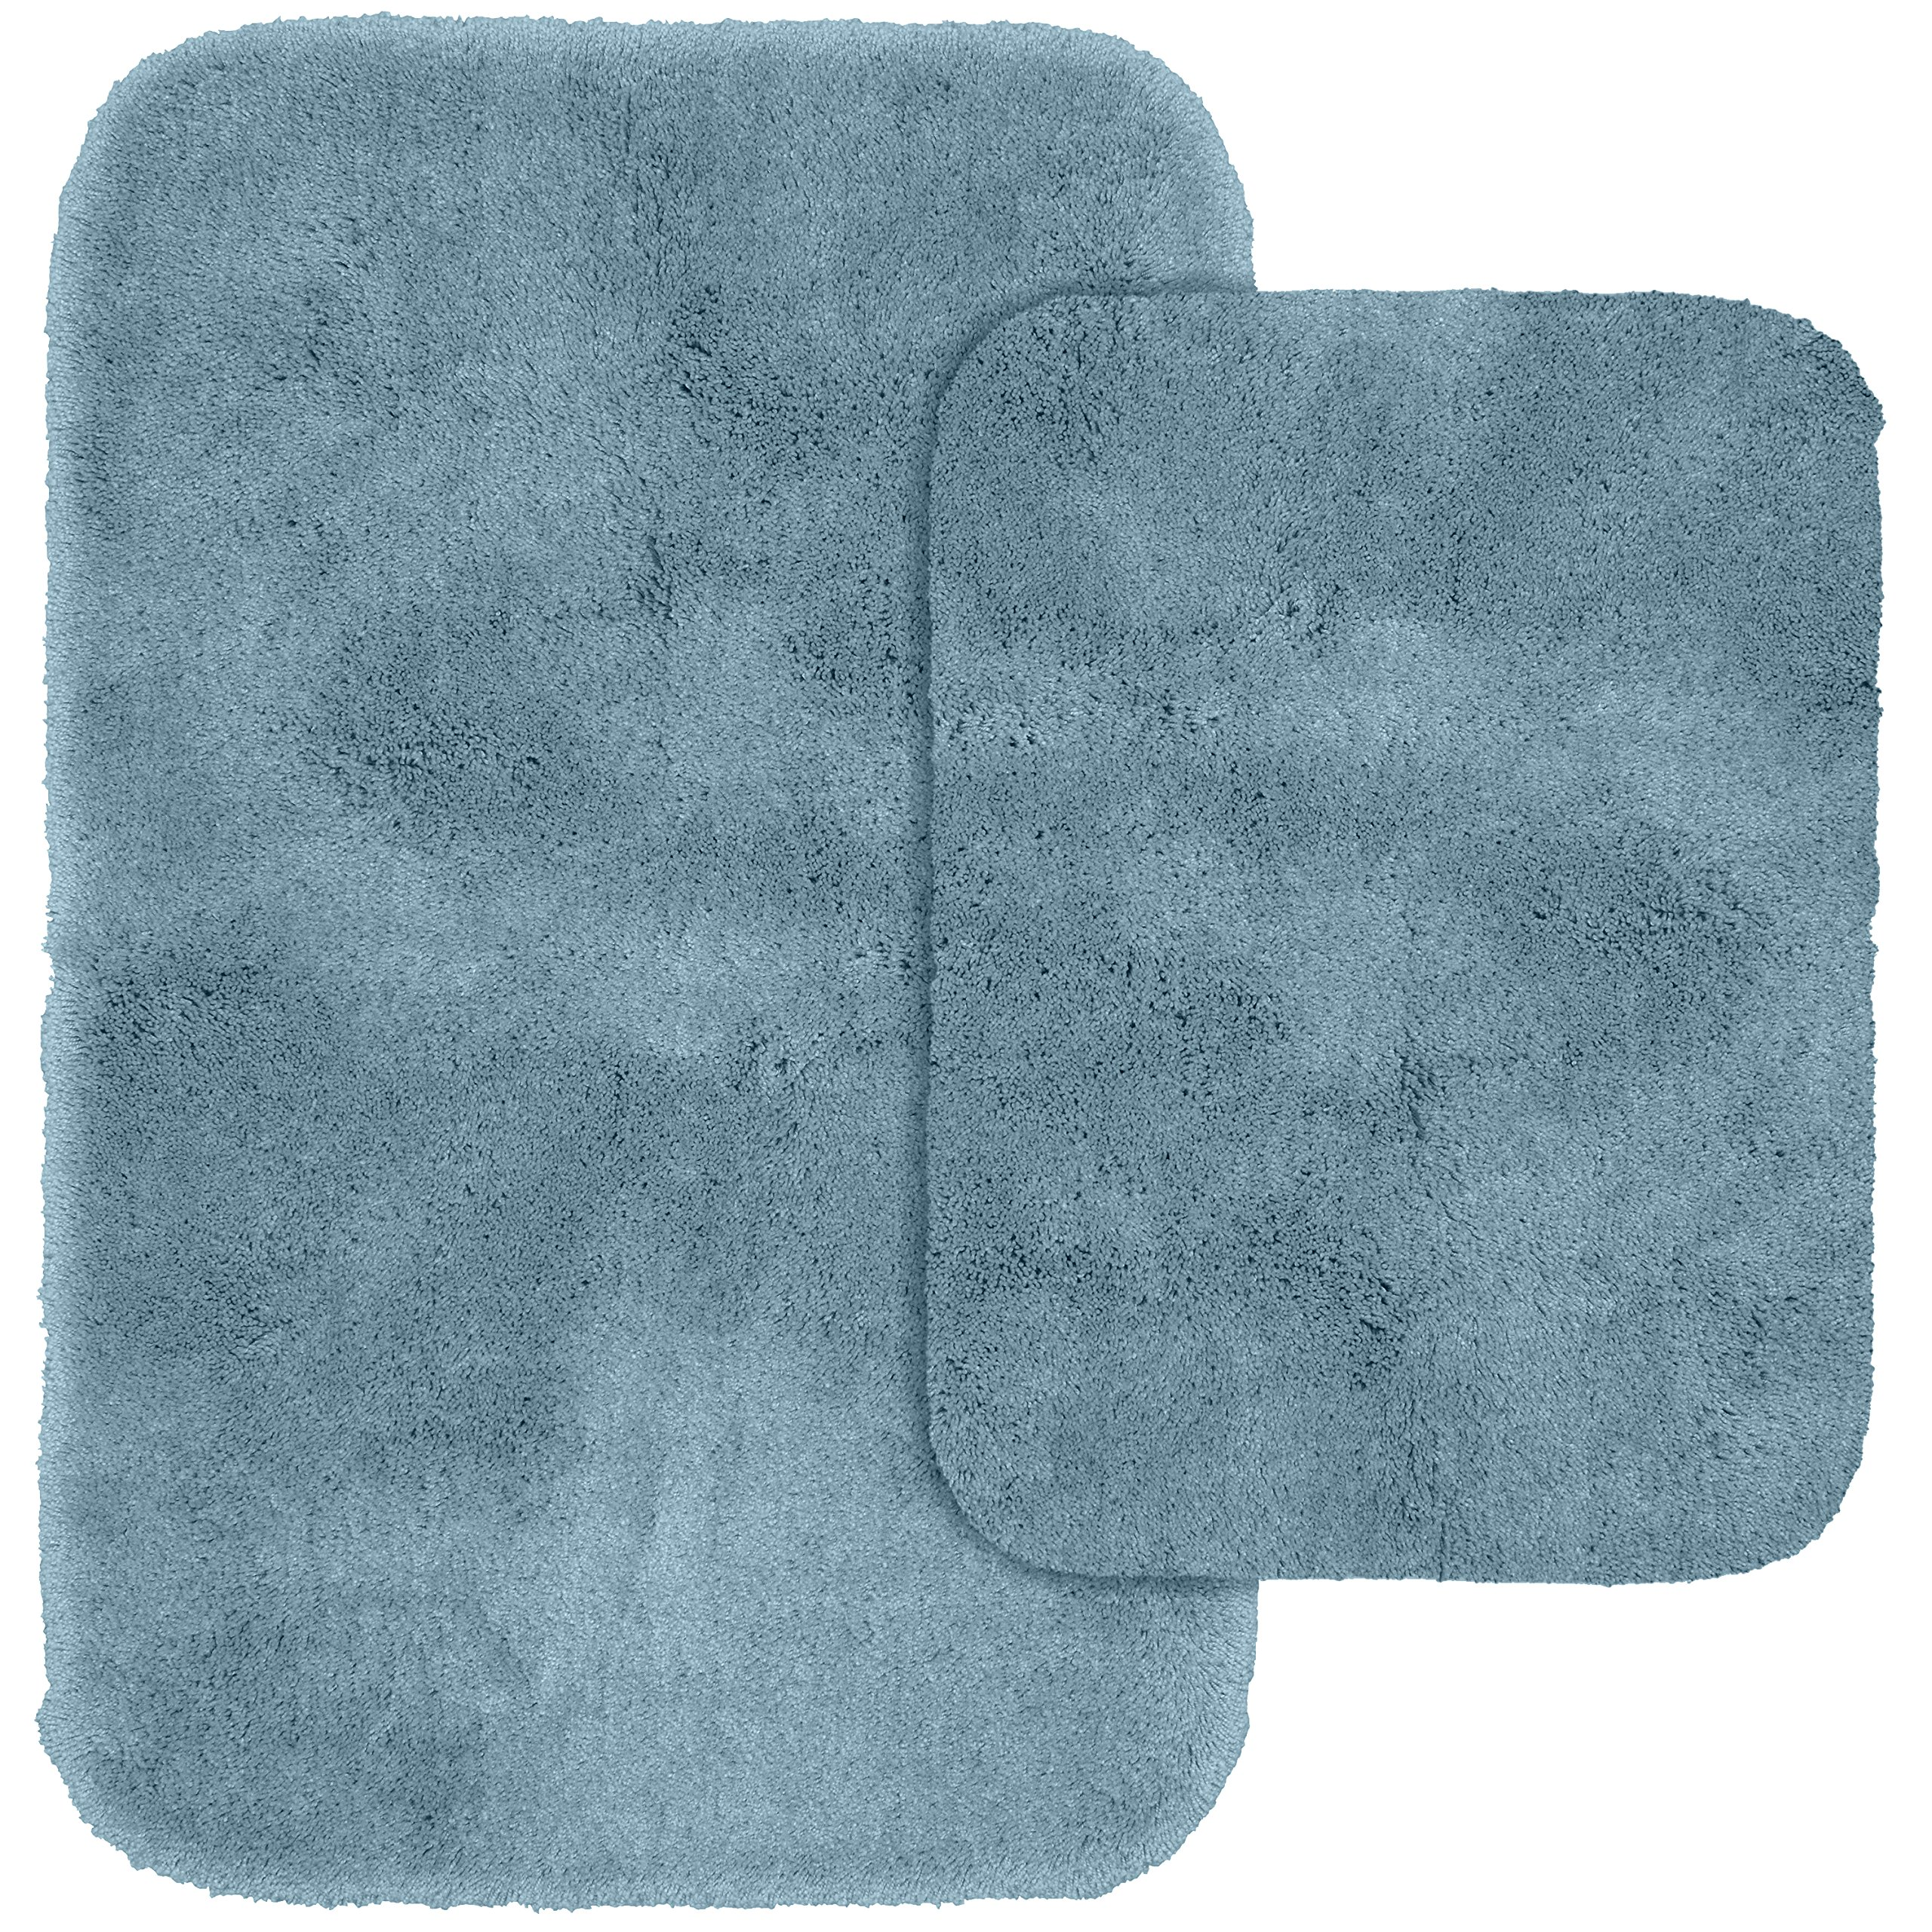 Garland Rug 2-Piece Finest Luxury Ultra Plush Washable Nylon Bathroom Rug Set, Basin Blue